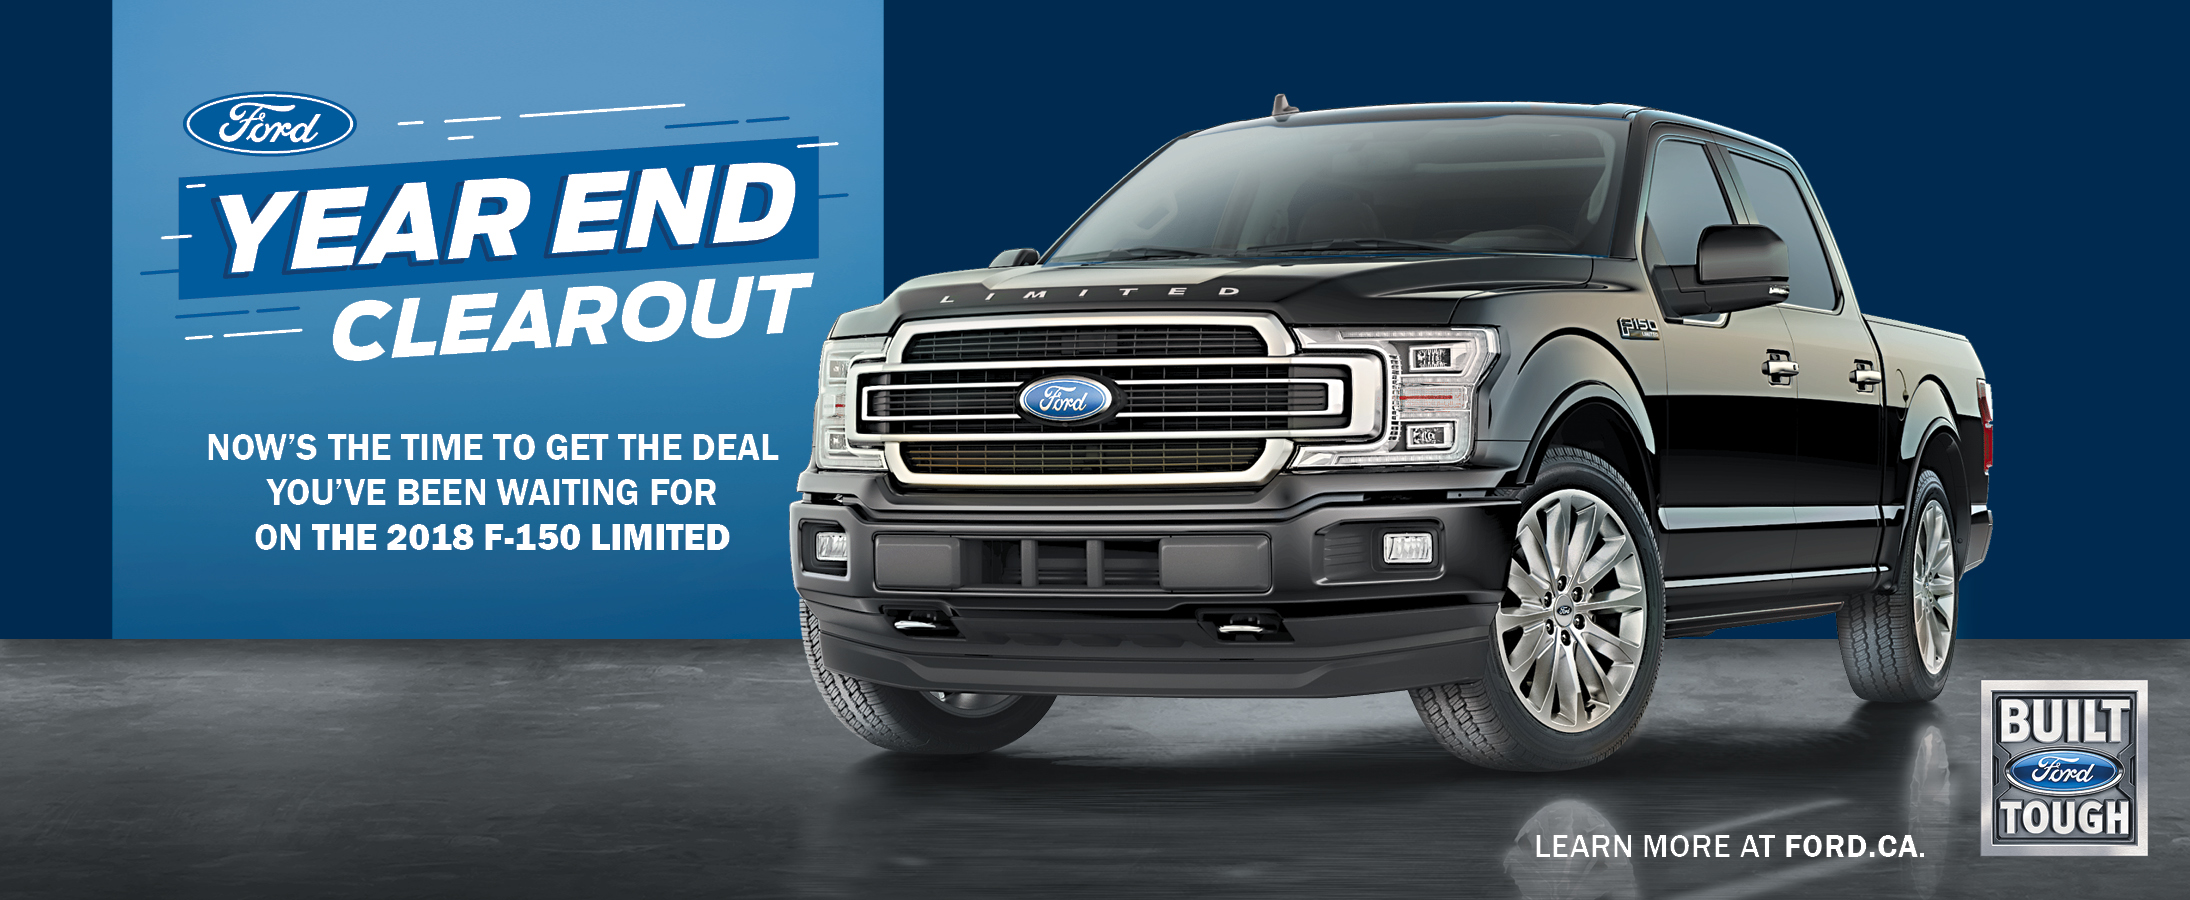 The ford year end clearout is on at koch ford nows the time to get the vehicle youve had your eye on with the deal youve been waiting for